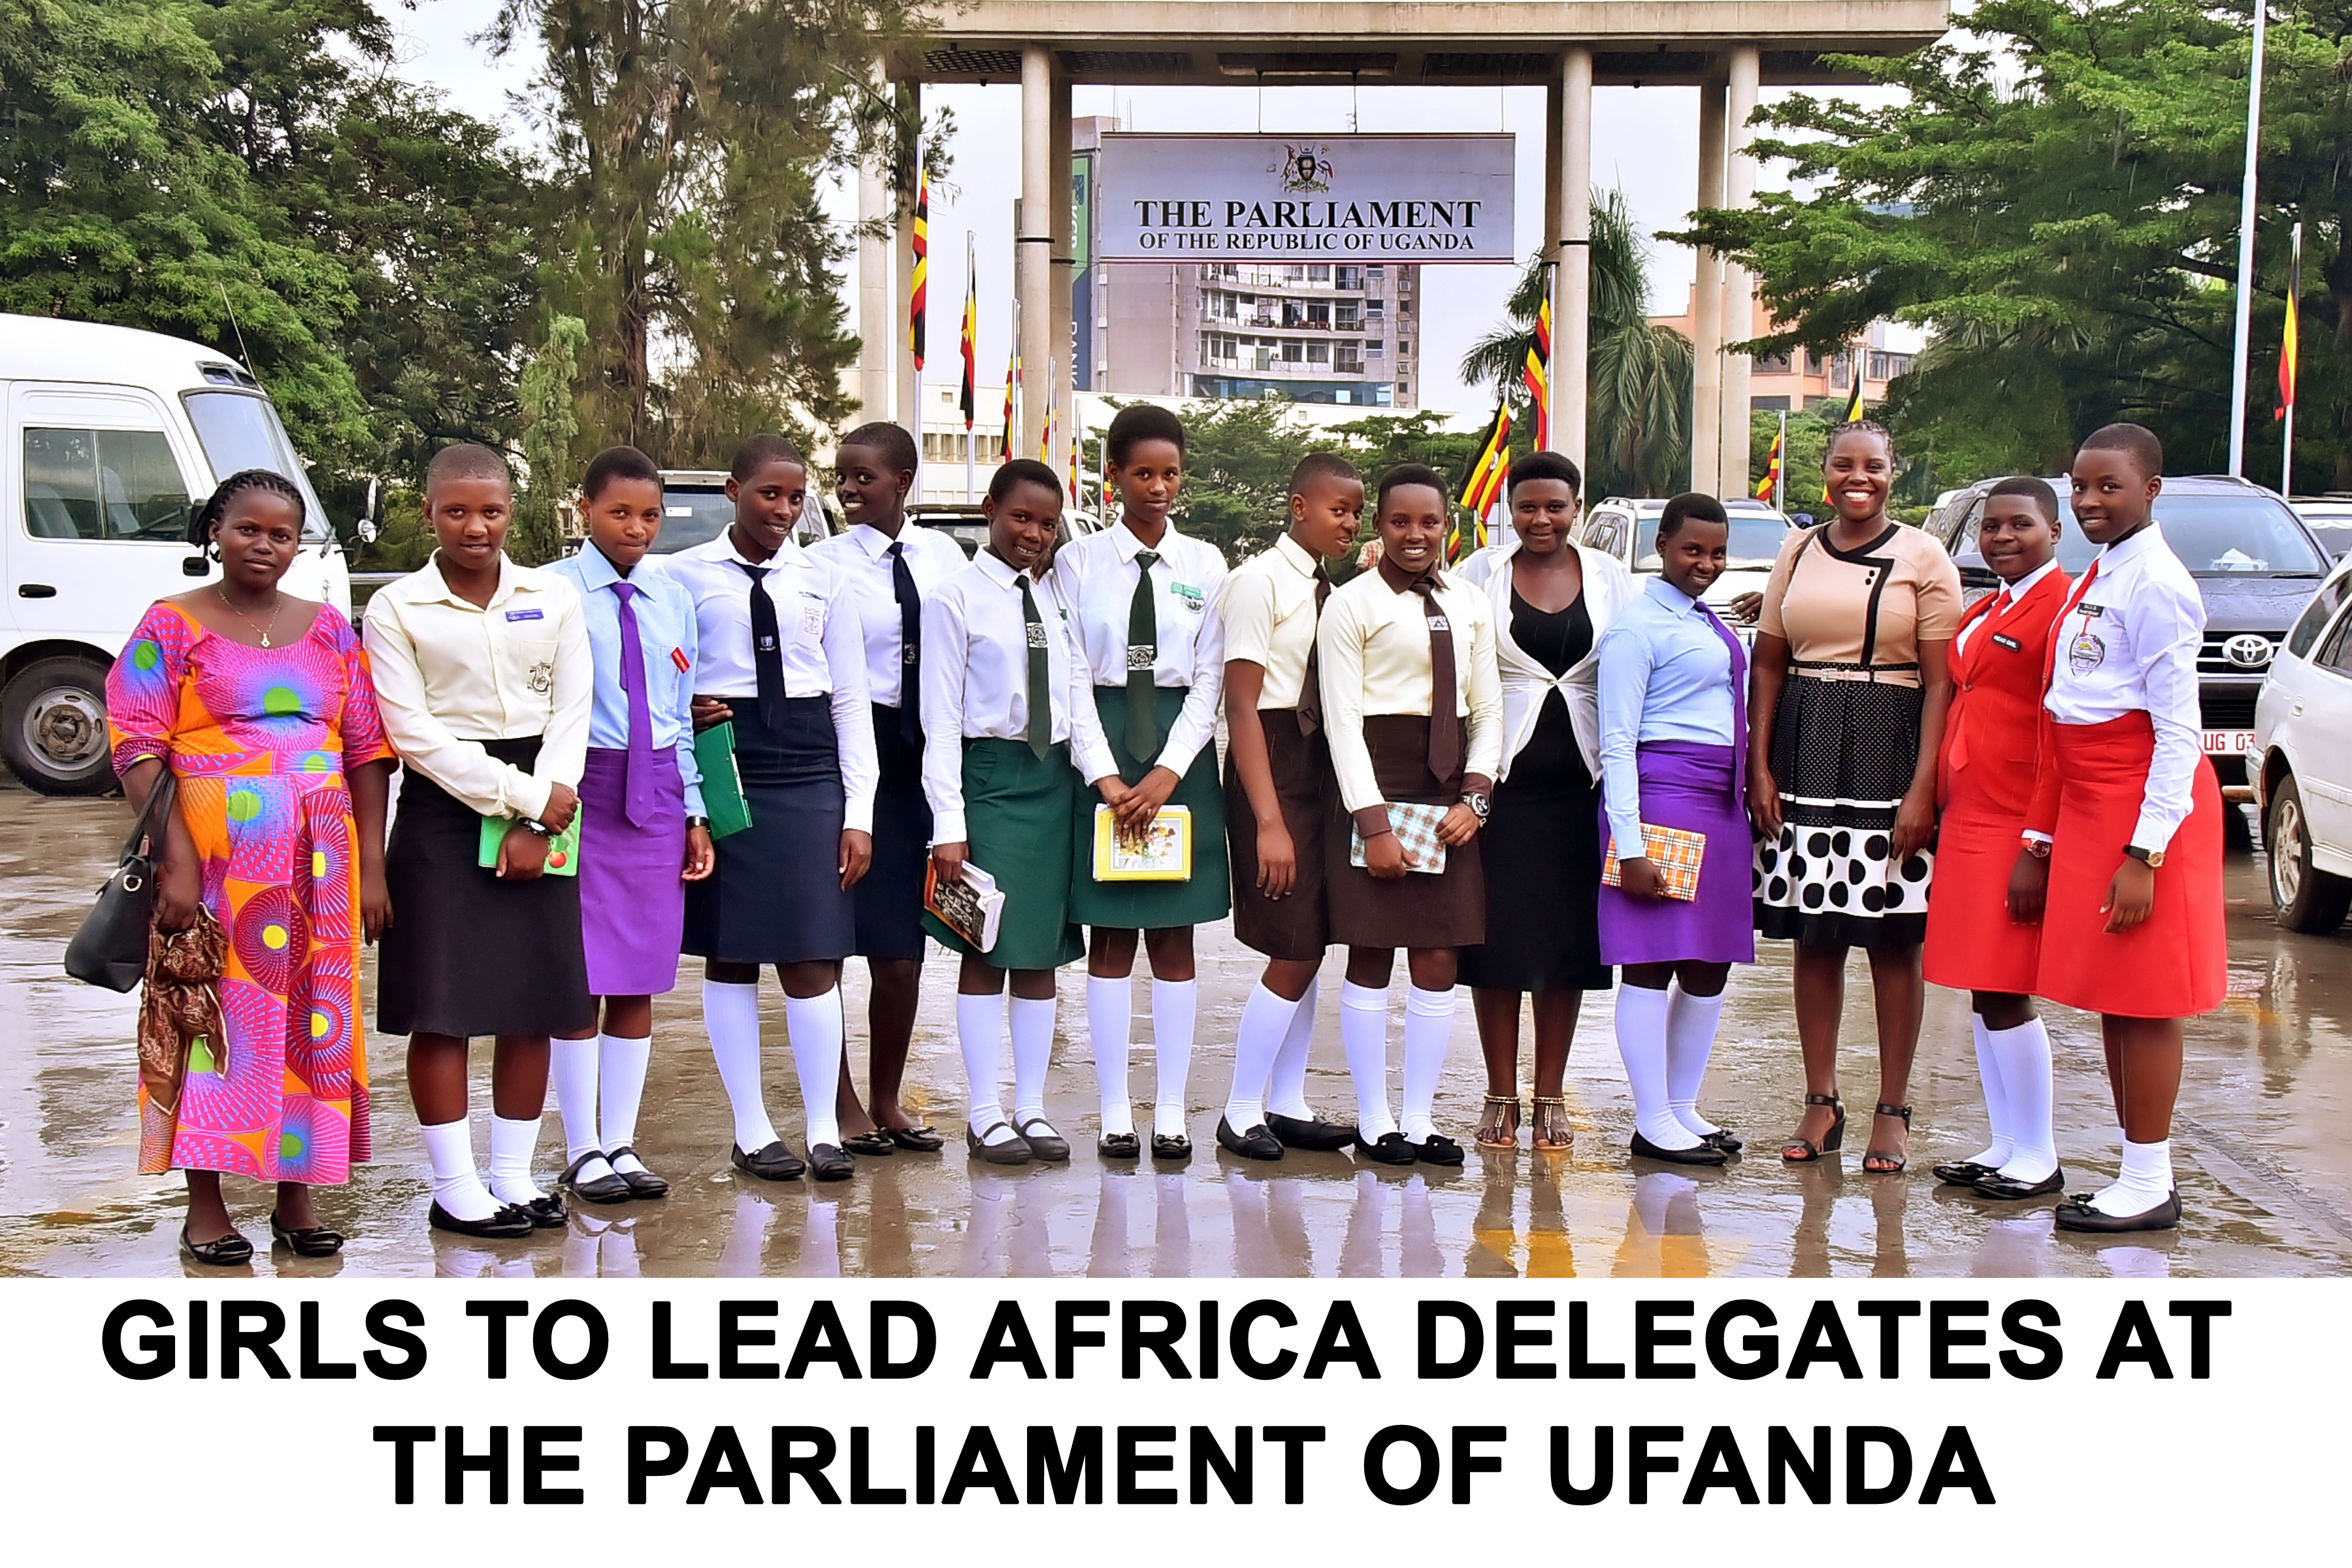 Girls to Lead Africa Founder Kansiime and Staff with GTLA Delegates at the parliament of Uganda